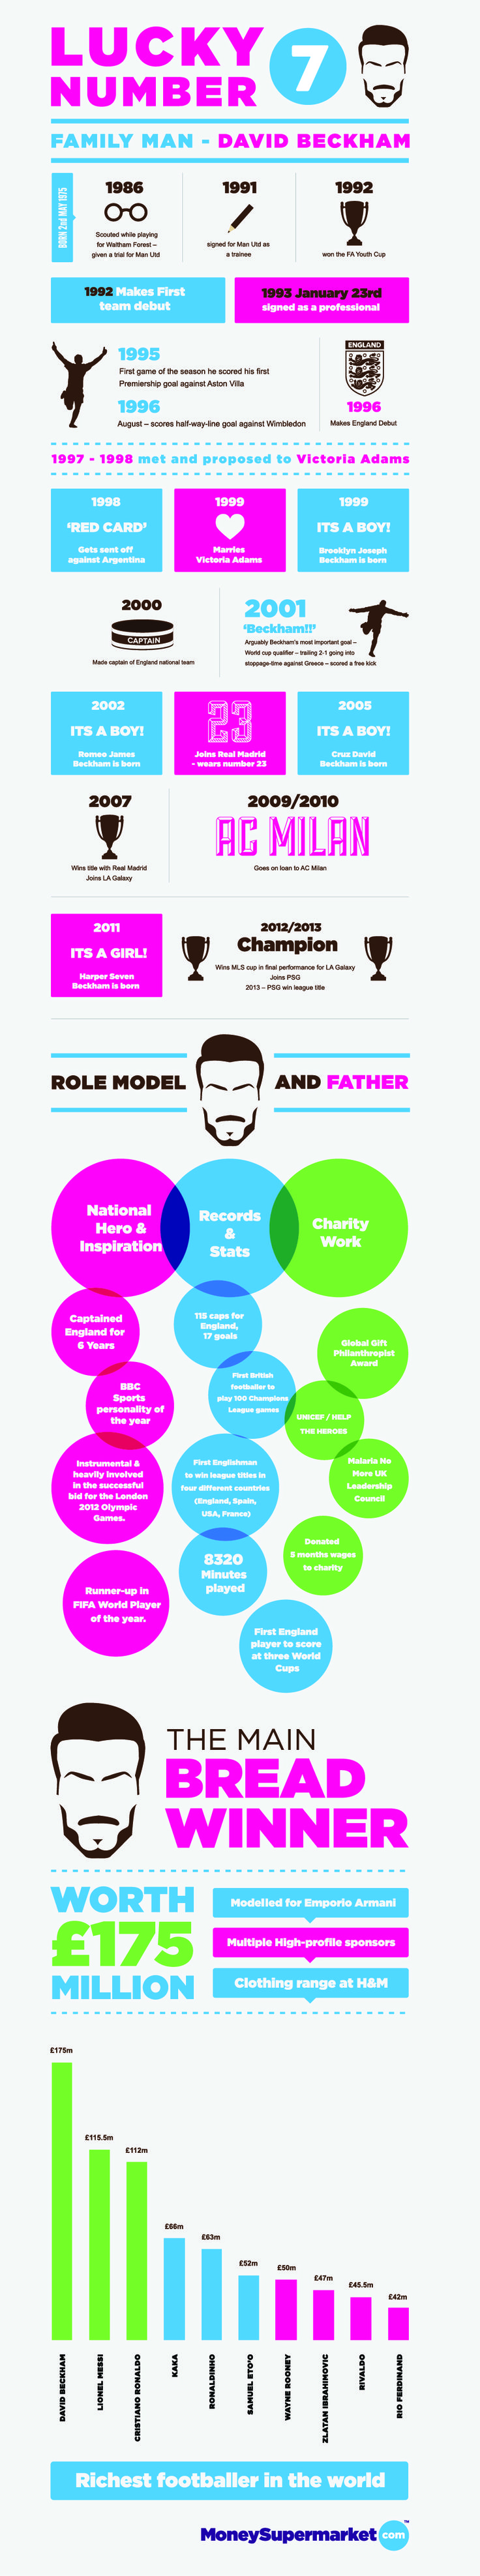 An overview of David Beckham's career as a football/soccer player, and as a father.  He is the richest player in the world thanks to Brand Beckham